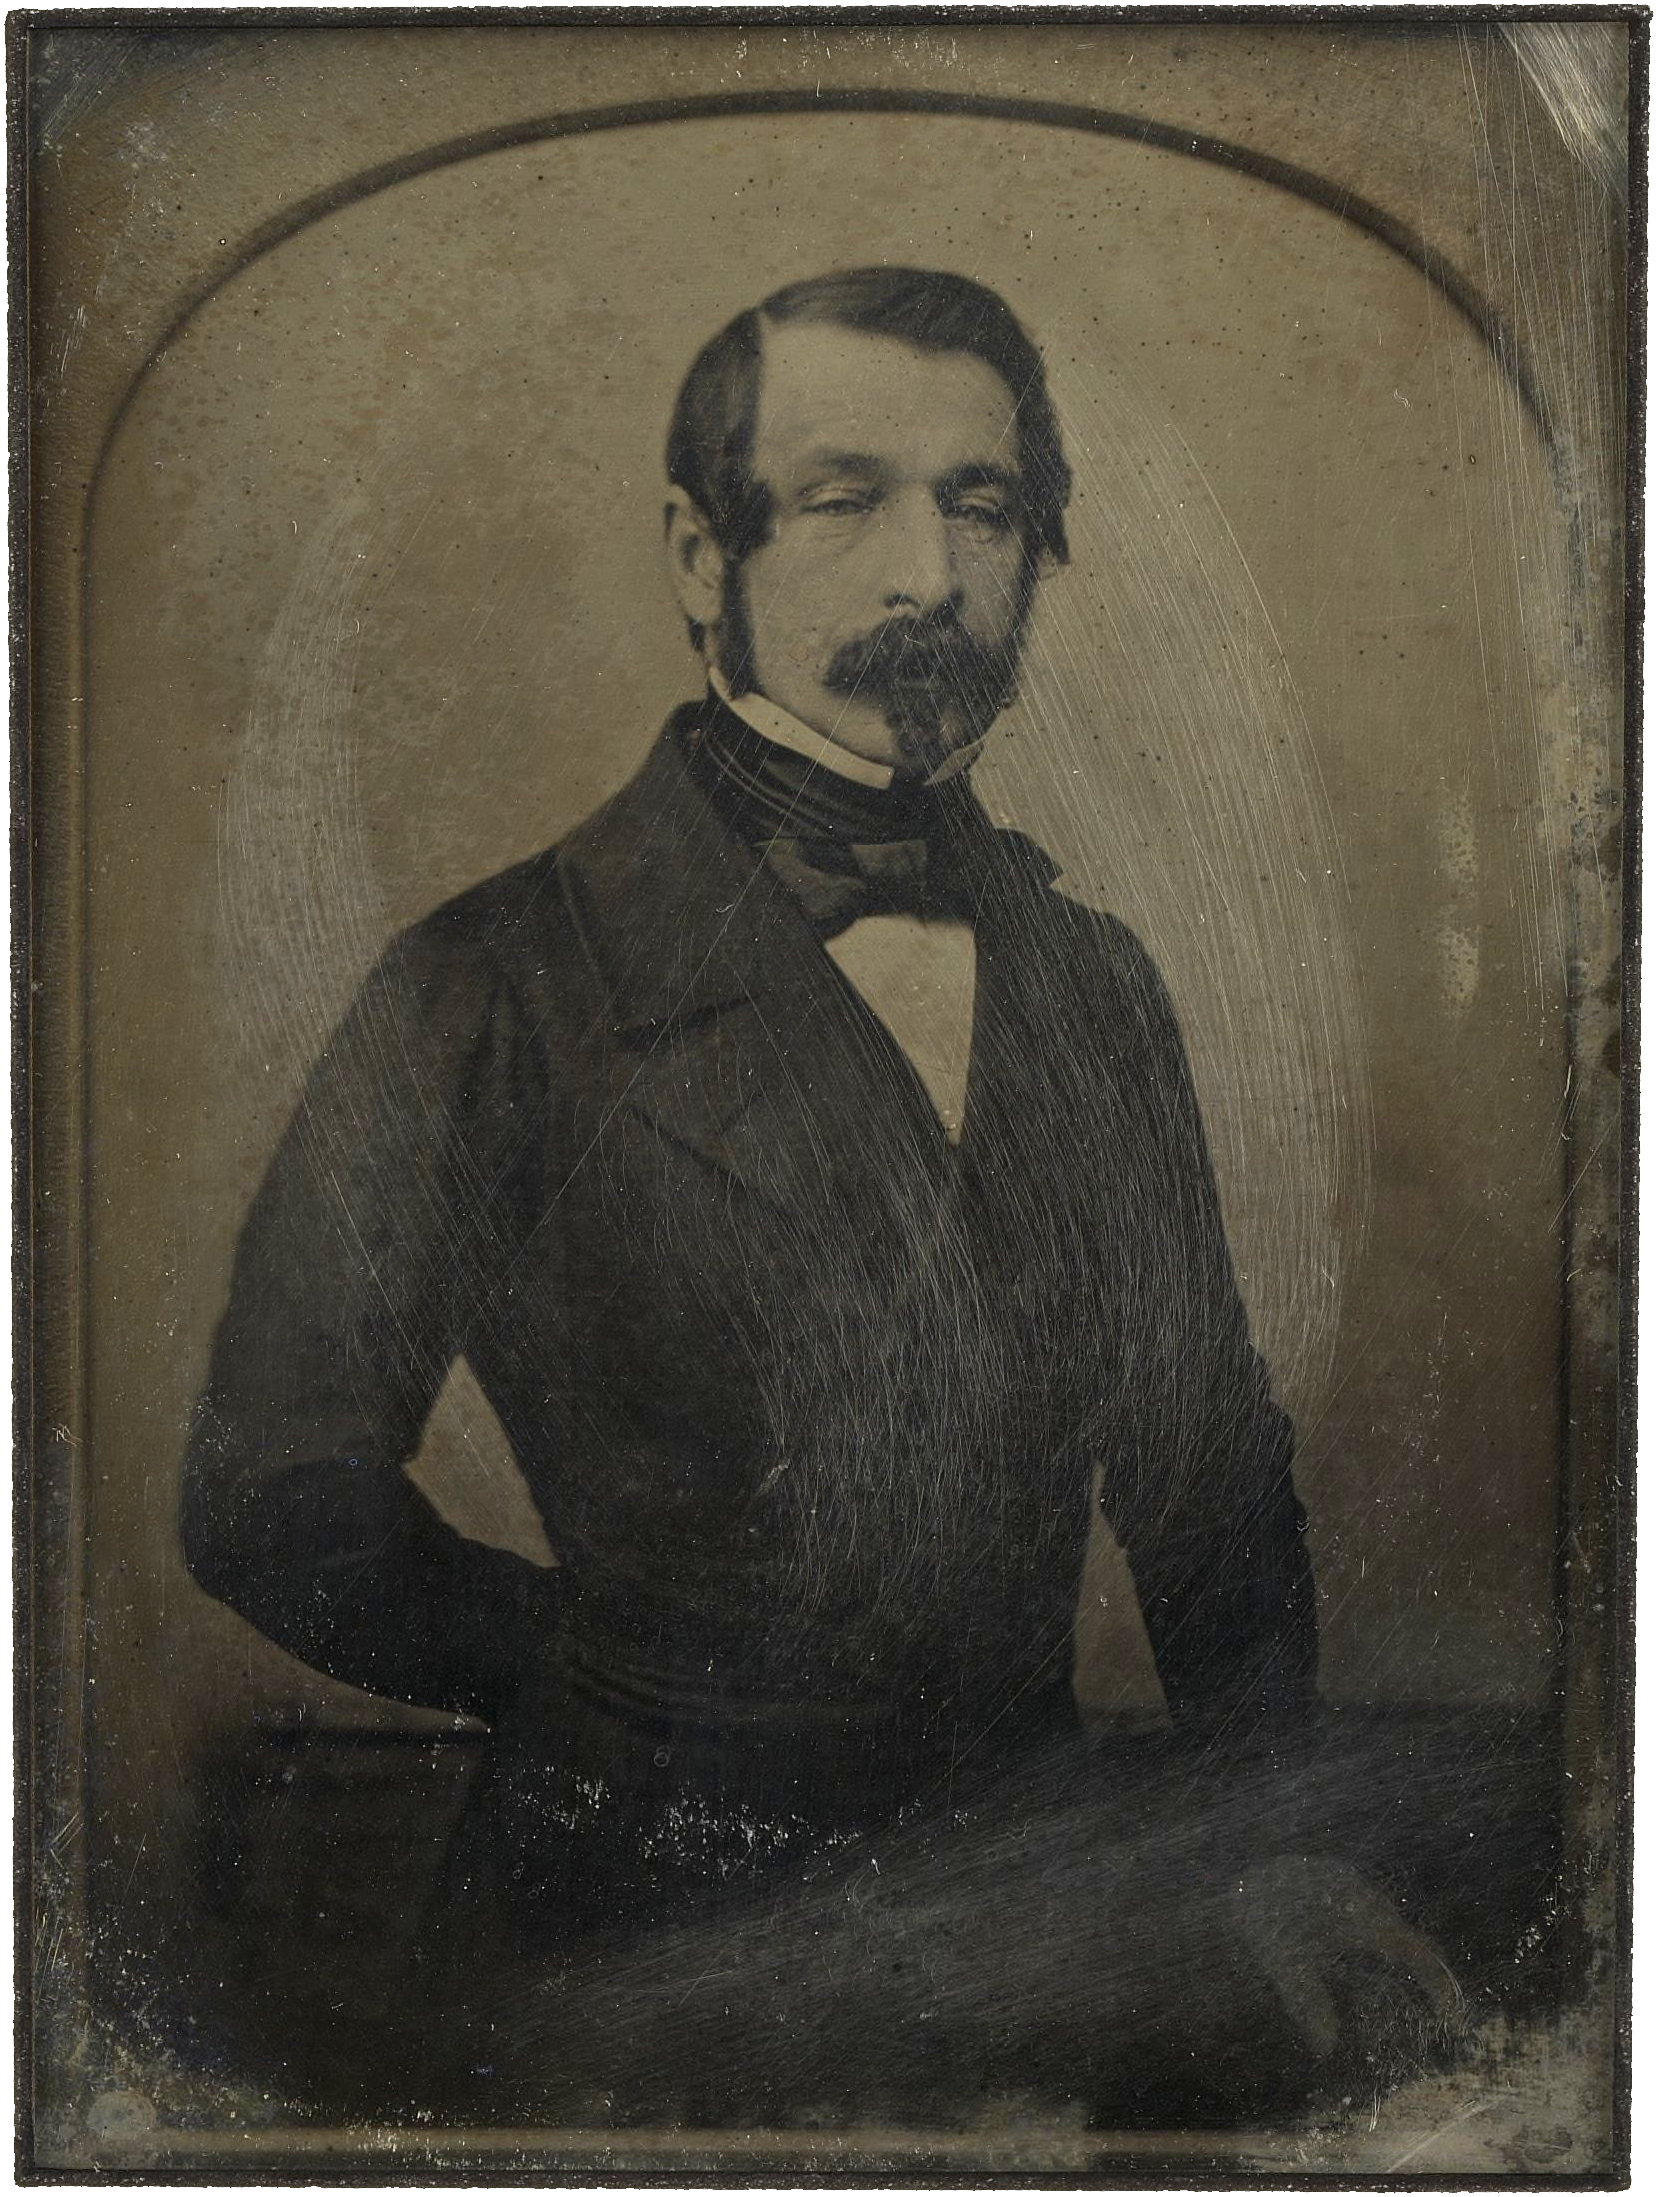 Kaiser Bonaparte Tapijt Daguerreotype Portrait Of Napoleon Iii Taken While He Was Serving